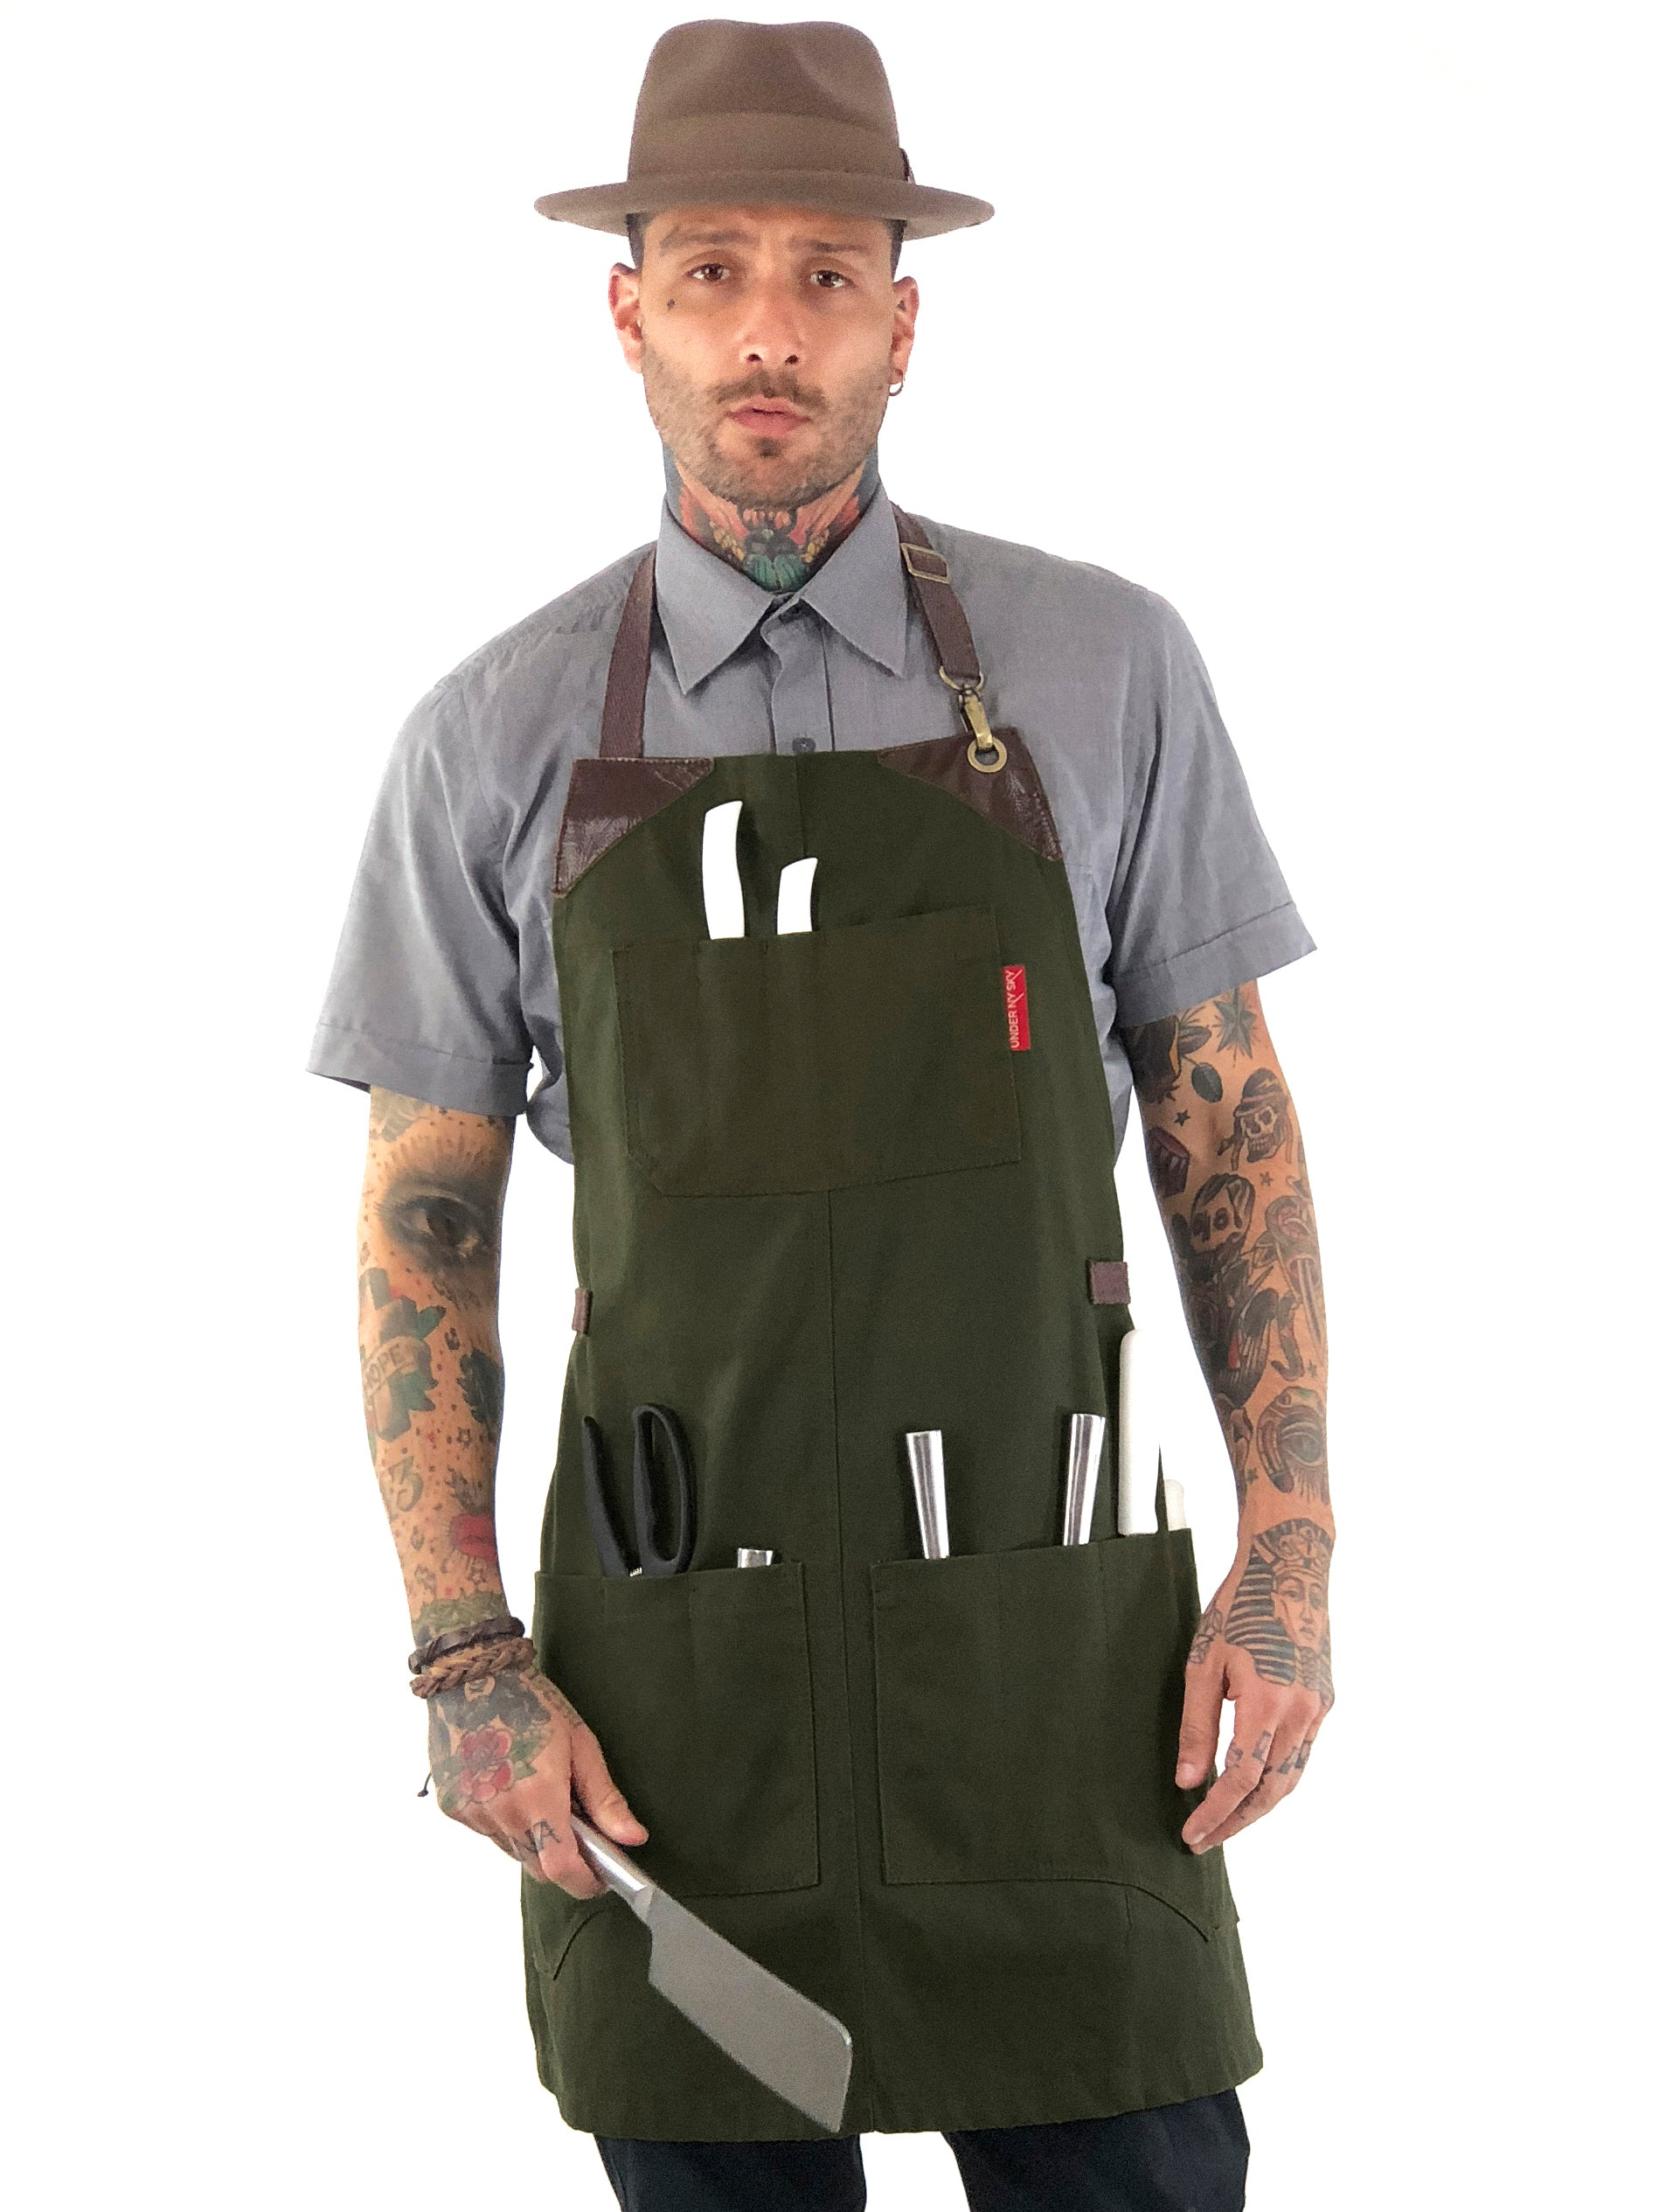 Knife-Roll Apron - Green Canvas